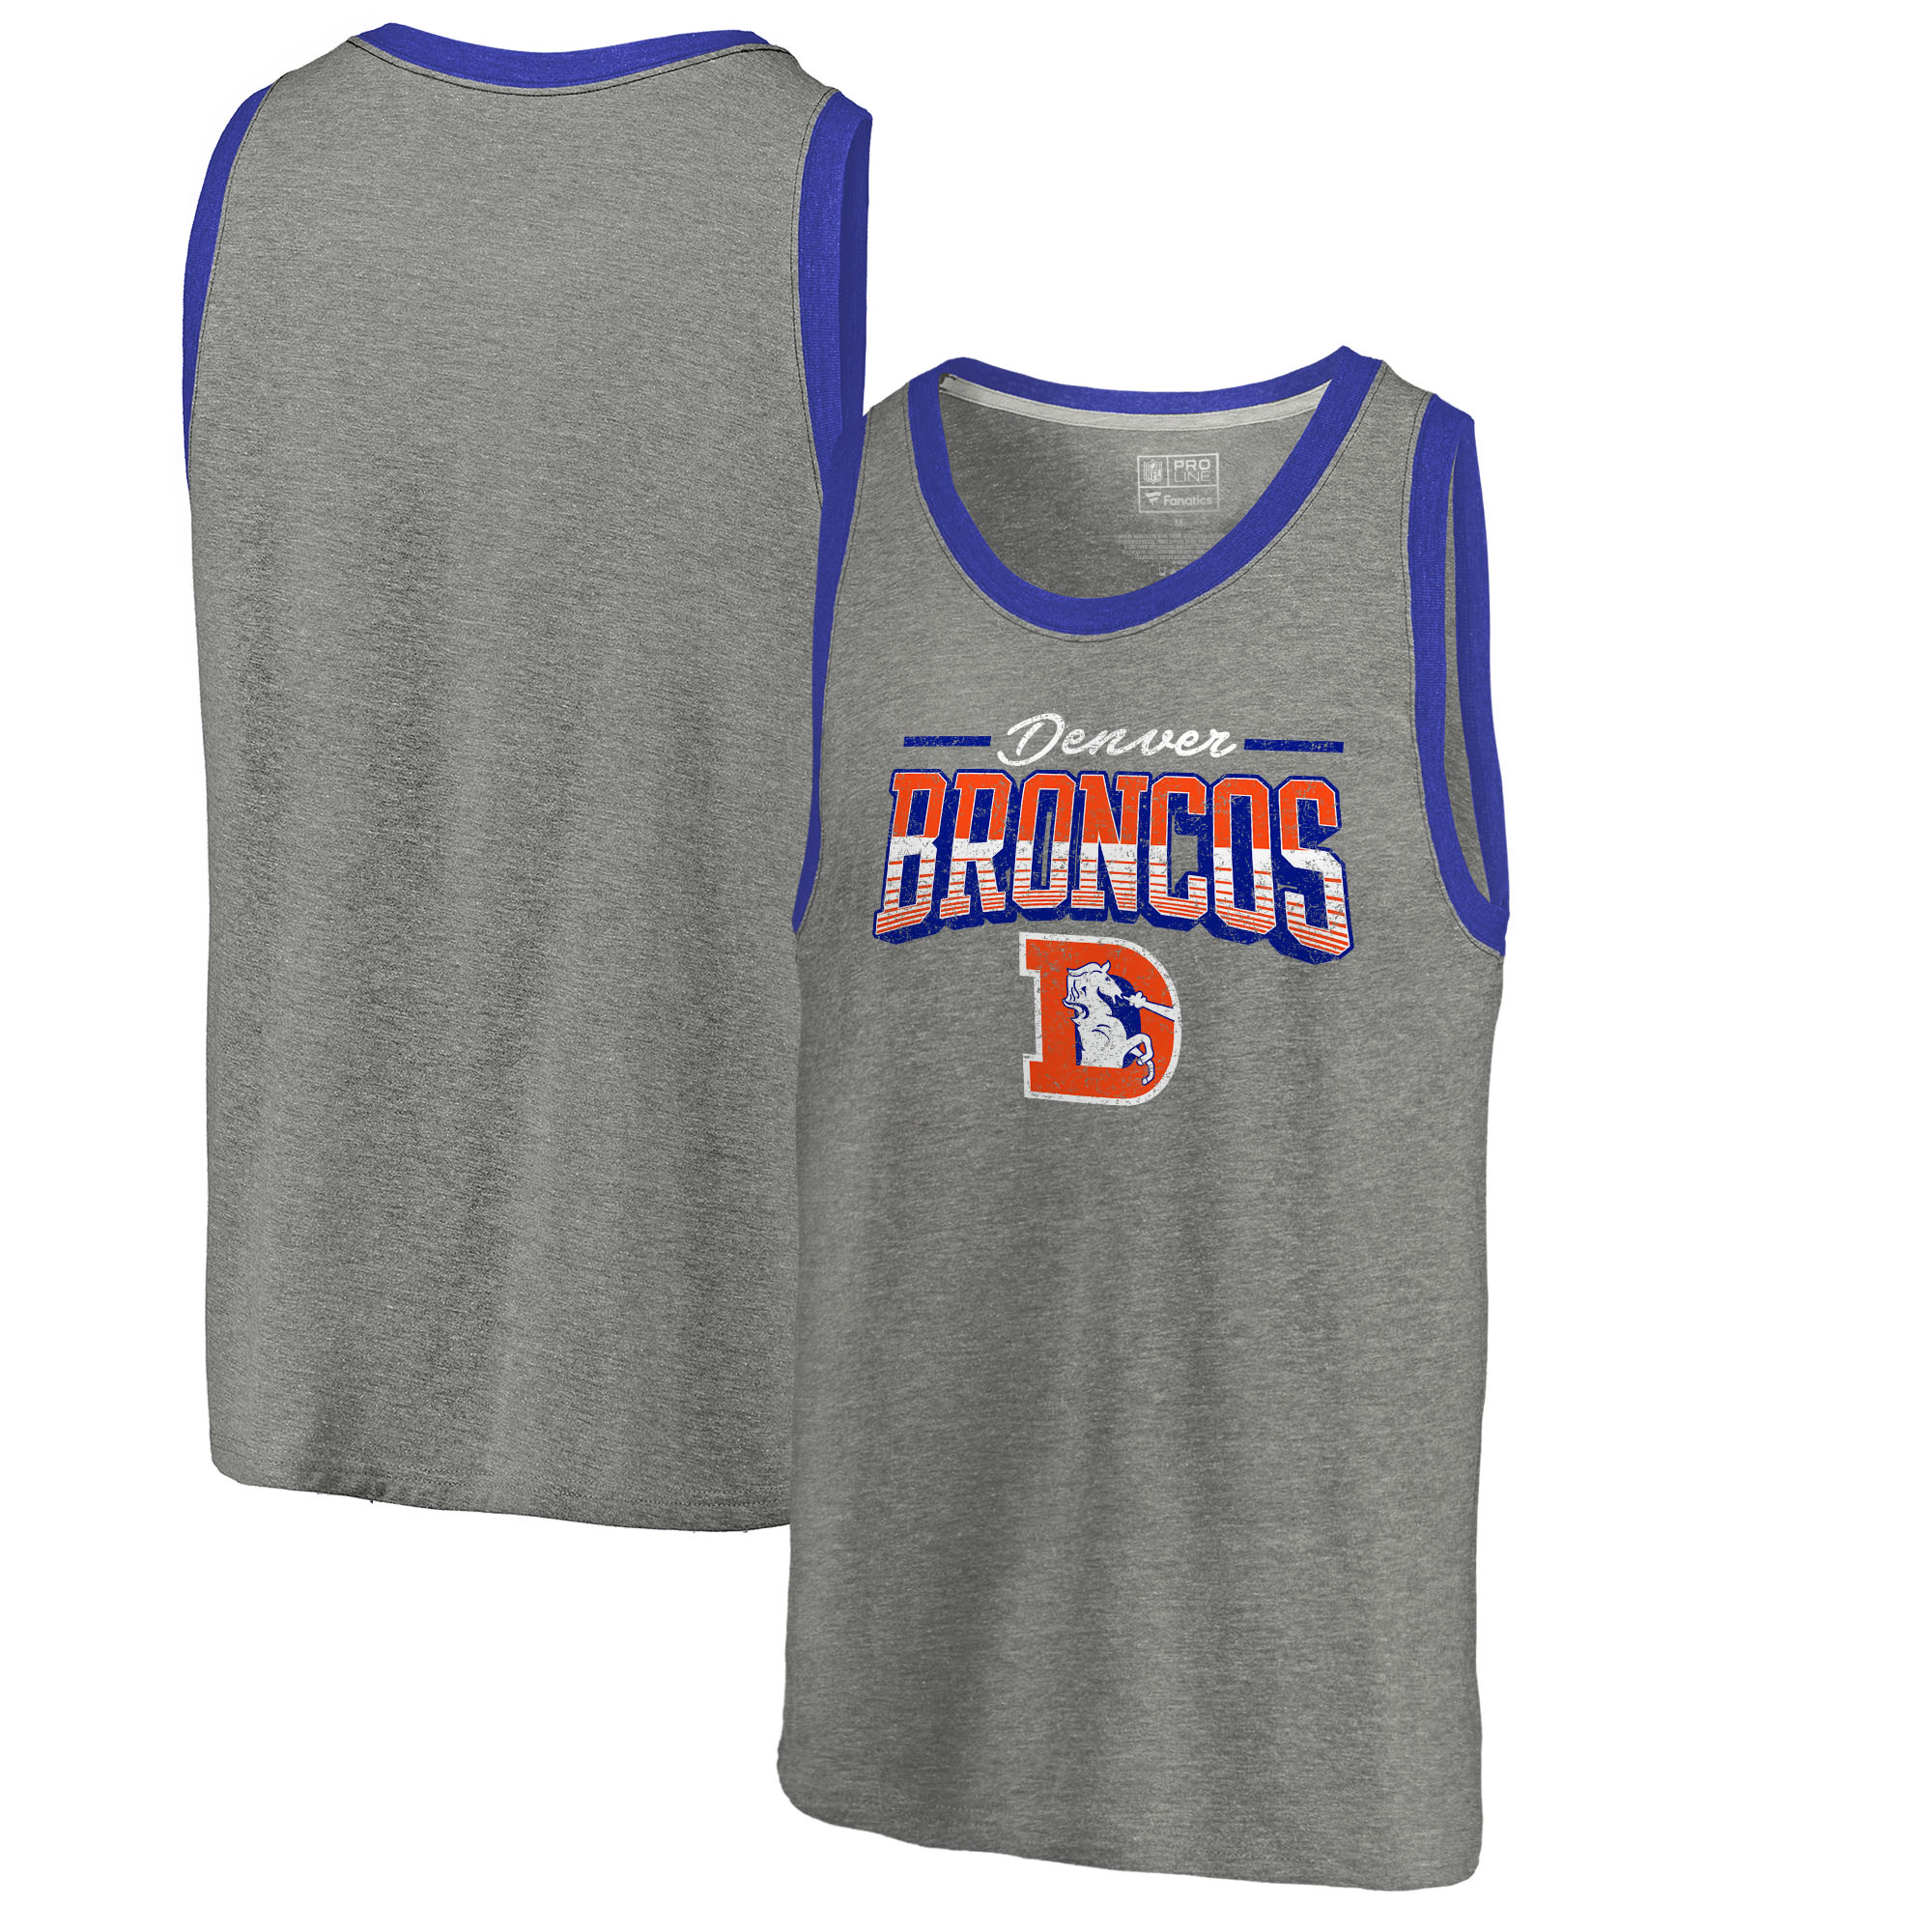 Denver Broncos NFL Pro Line by Fanatics Branded Throwback Collection Season Ticket Tri-Blend Tank Top - Heathered Gray